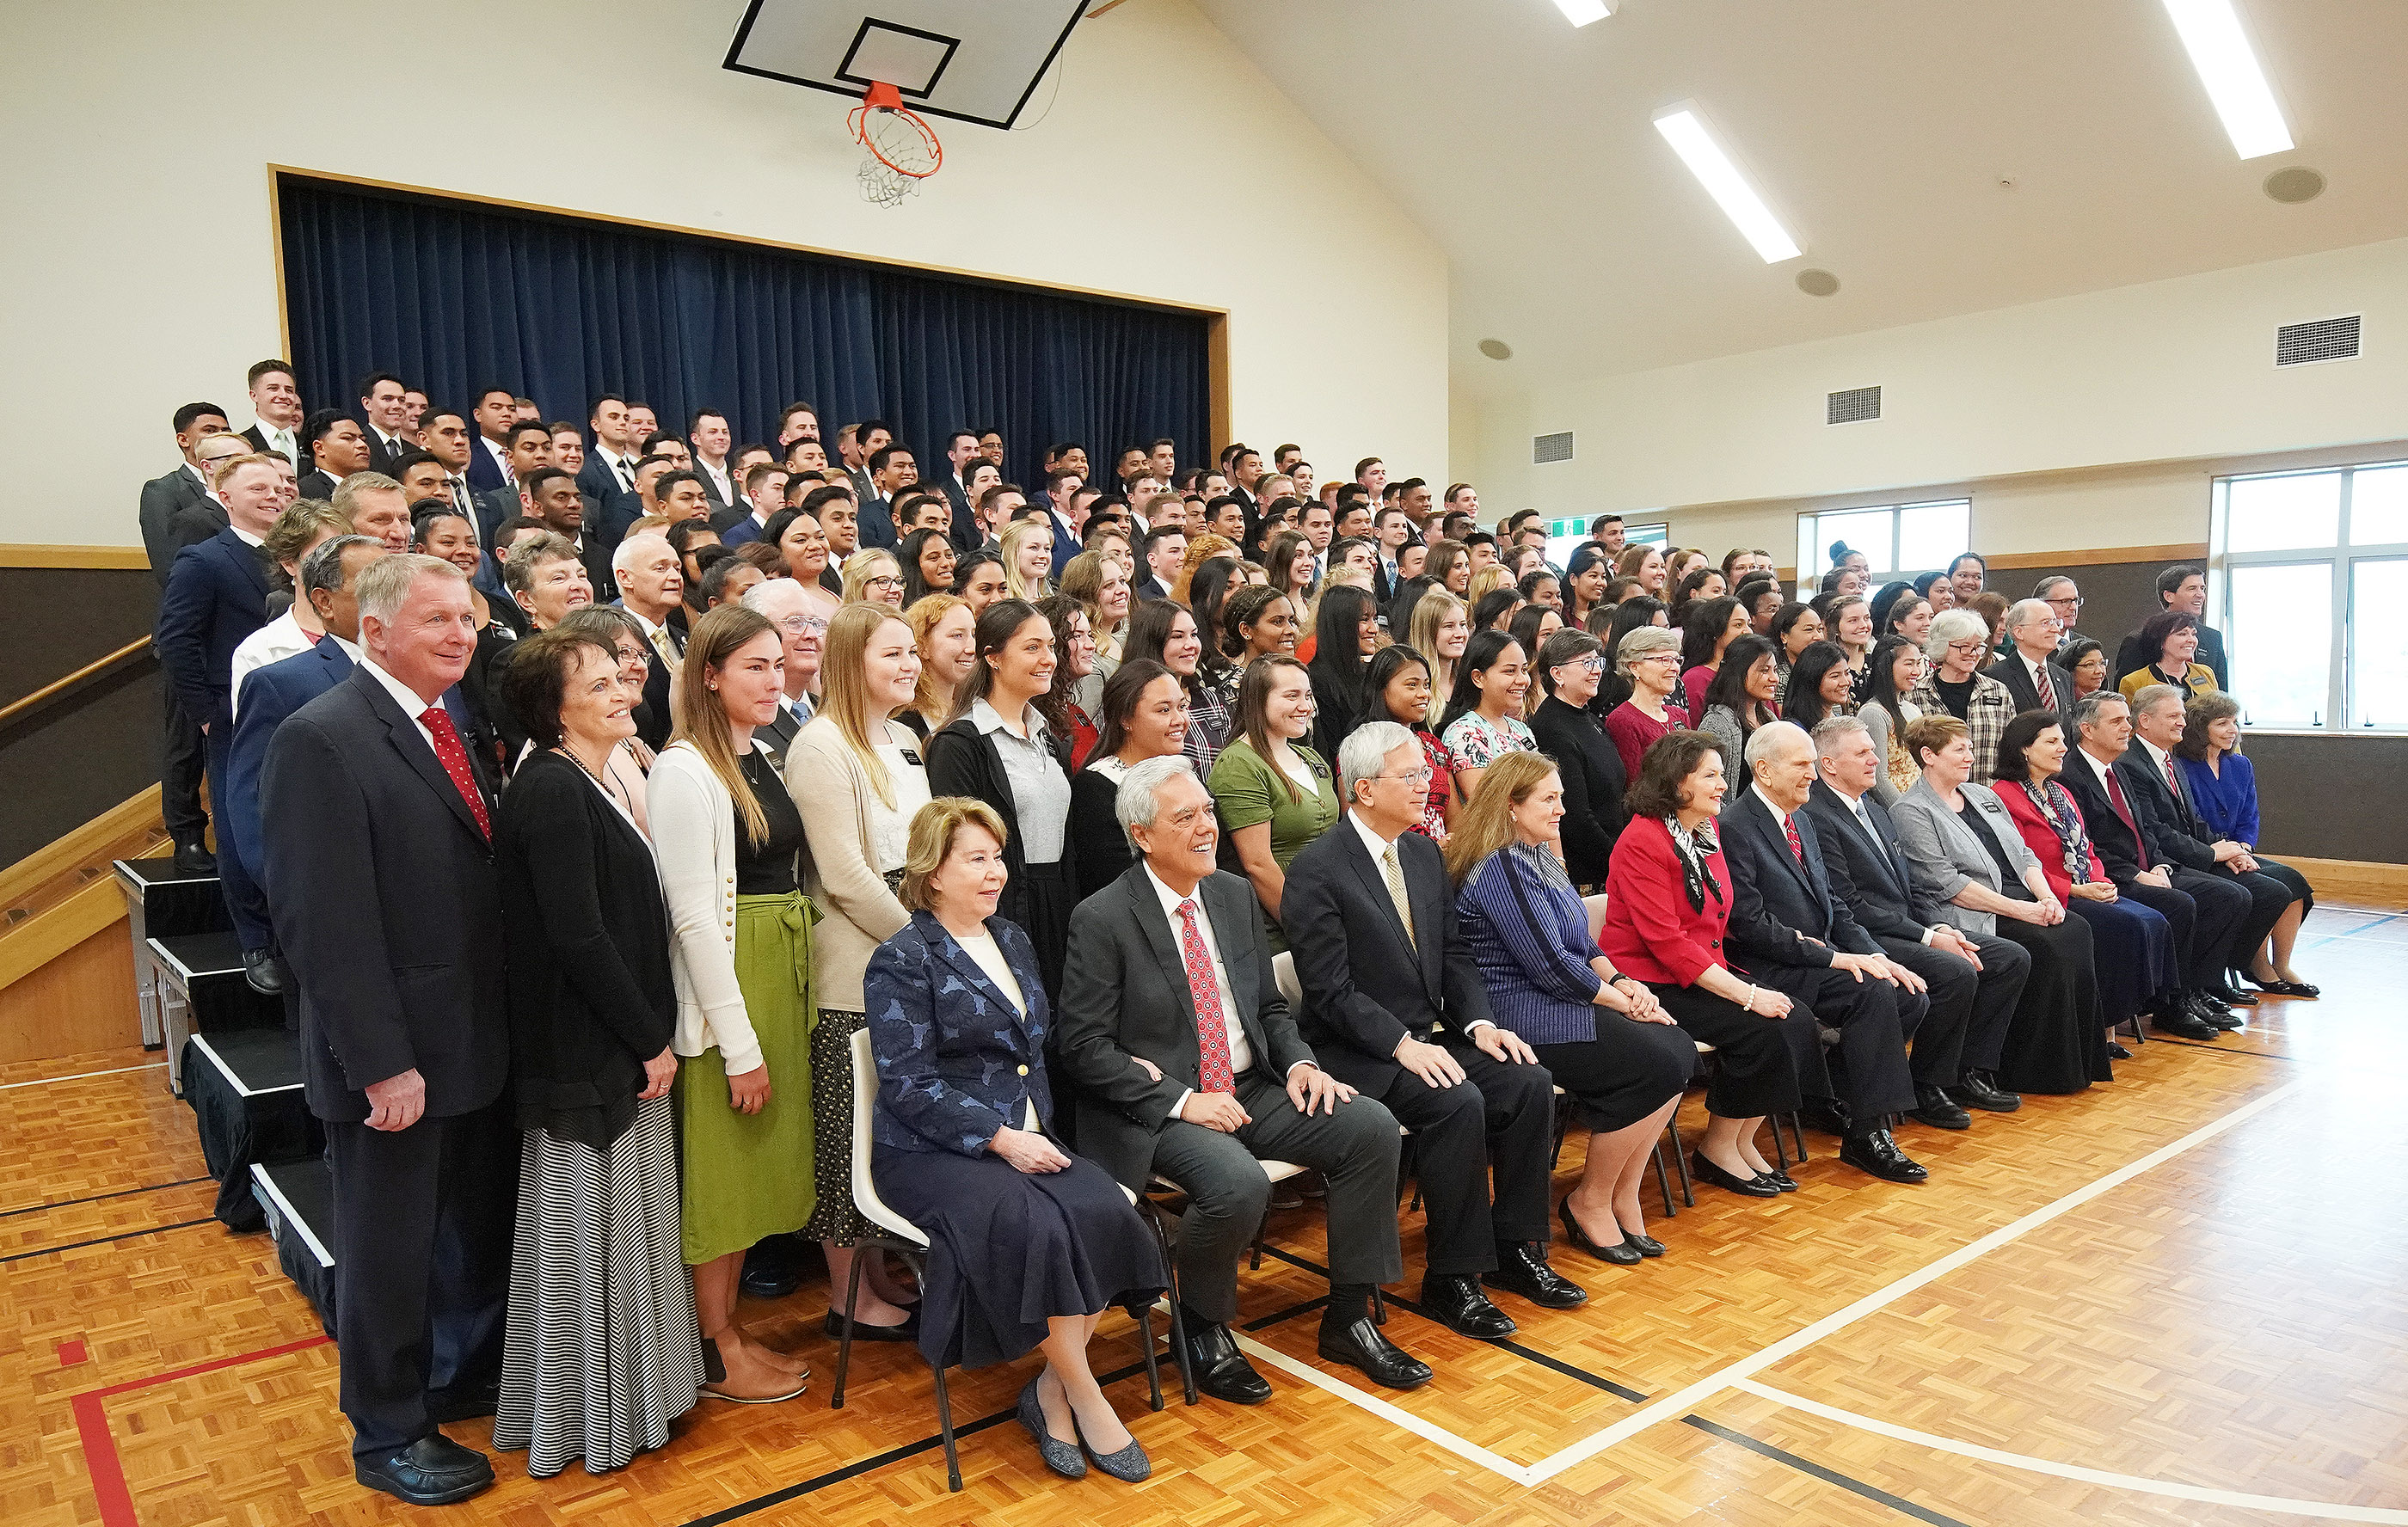 President Russell M. Nelson of The Church of Jesus Christ of Latter-day Saints has a photo taken with missionaries in Auckland, New Zealand, on Tuesday, May 21, 2019.